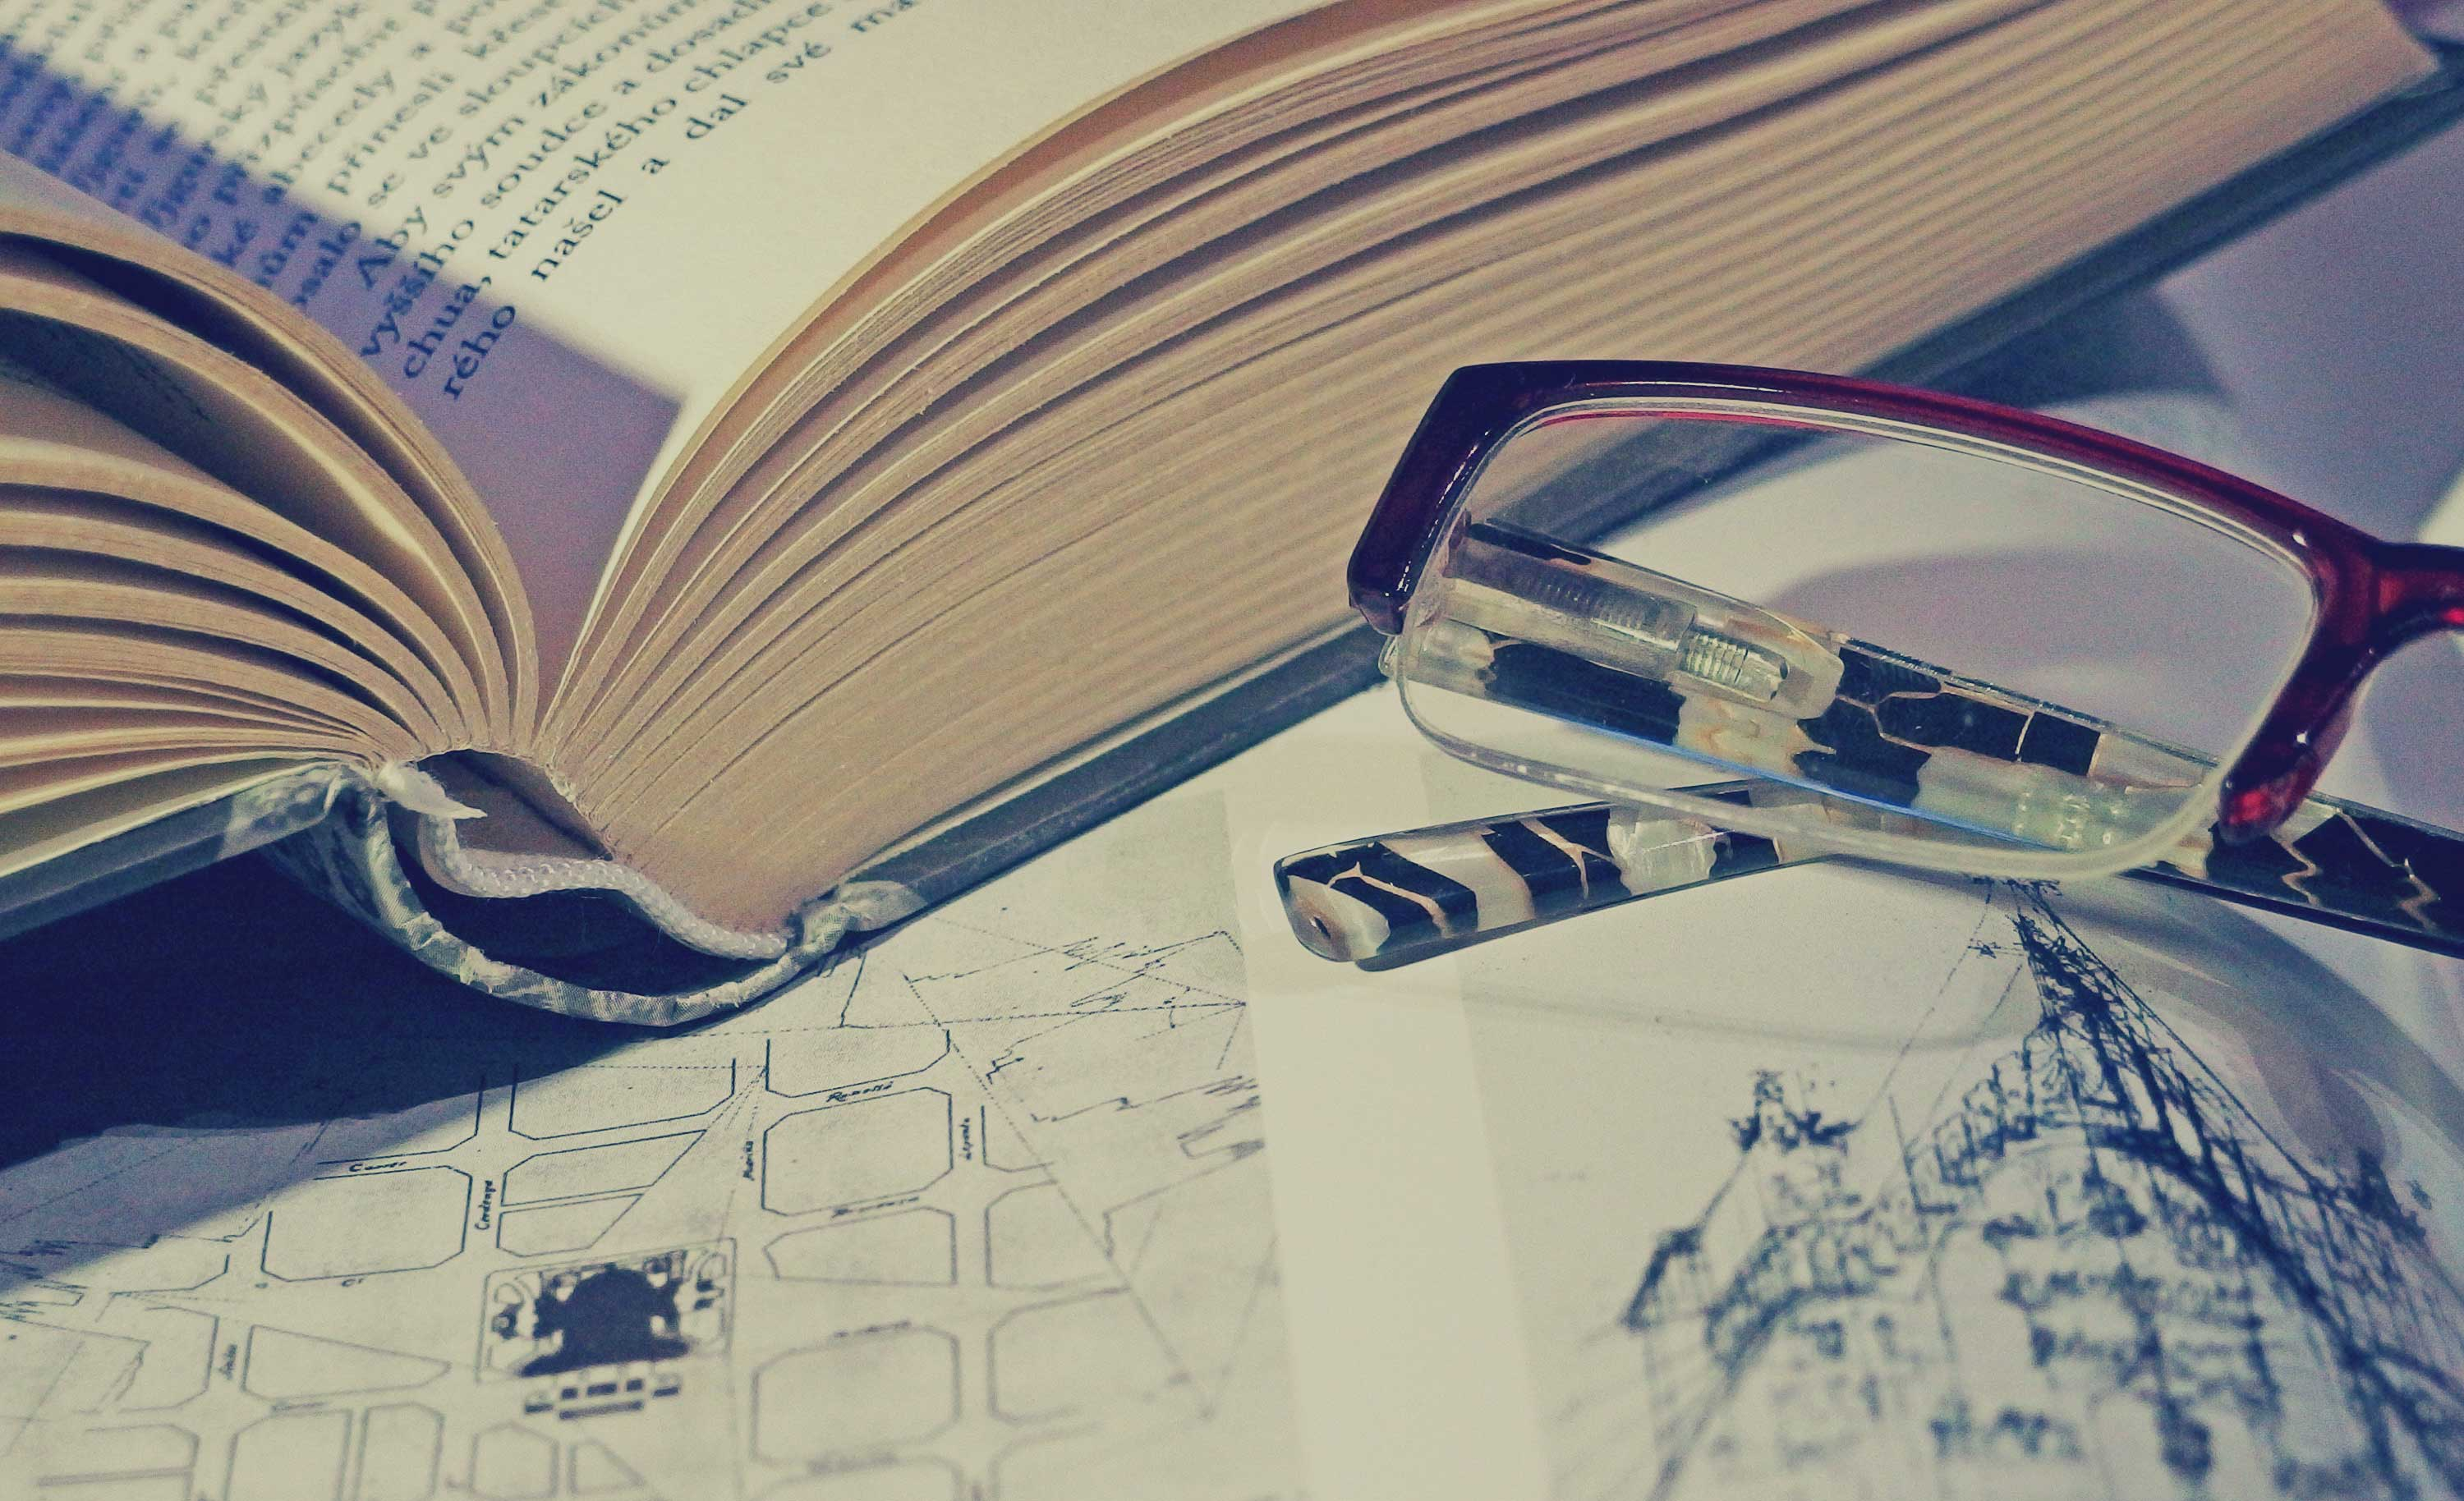 FREE IMAGE: Books and glasses - Libreshot Public Domain Photos